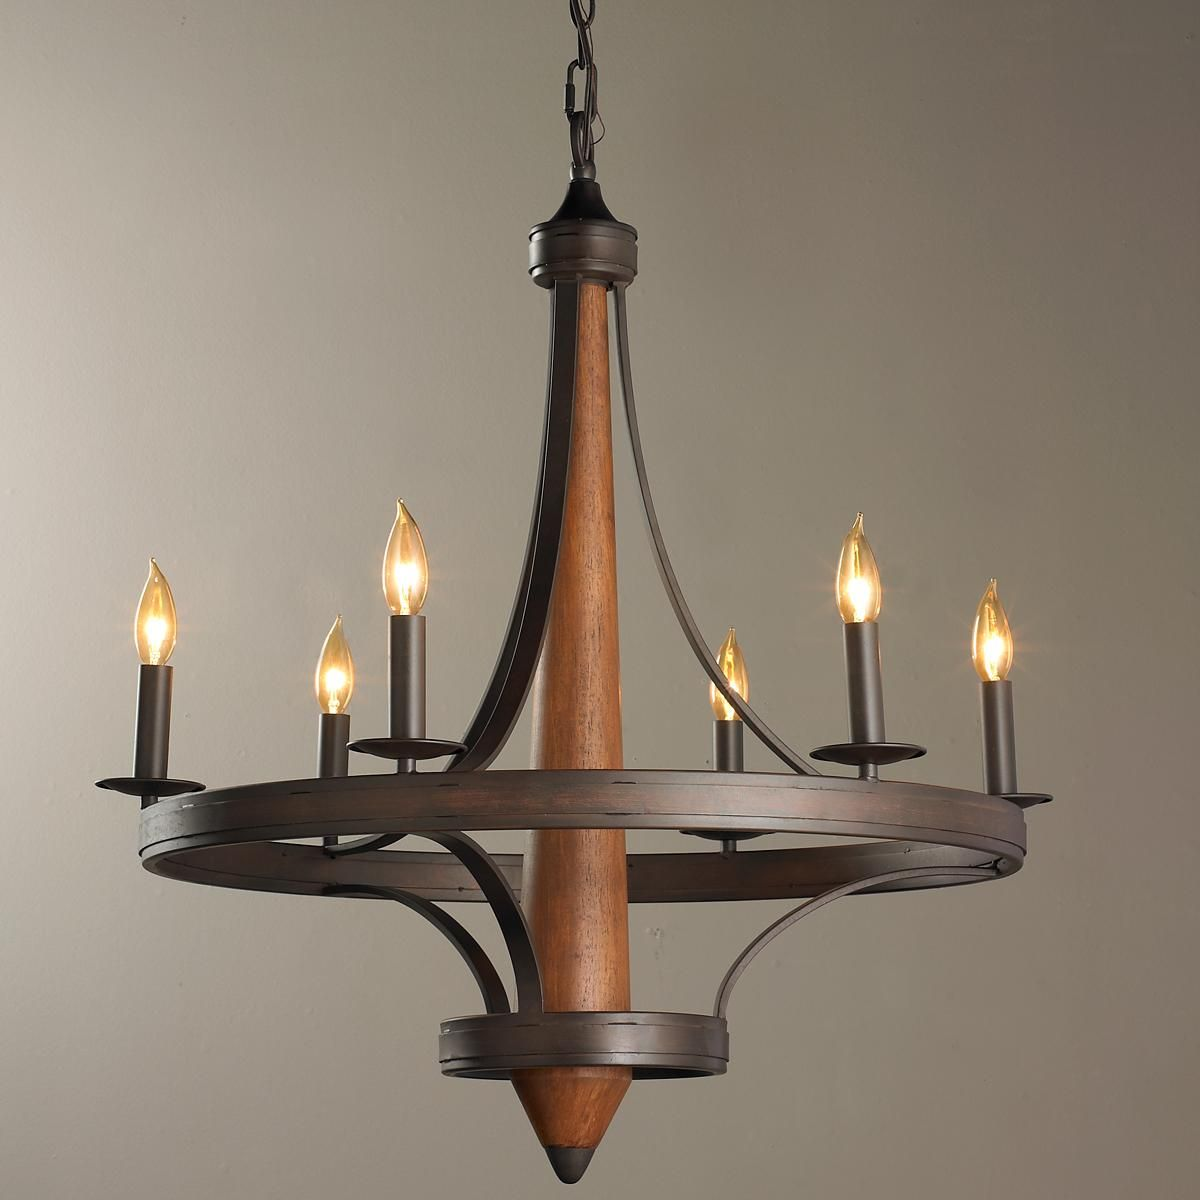 Old World Dining Room Chandeliers: *similar* Vintage Bronze French Chandelier